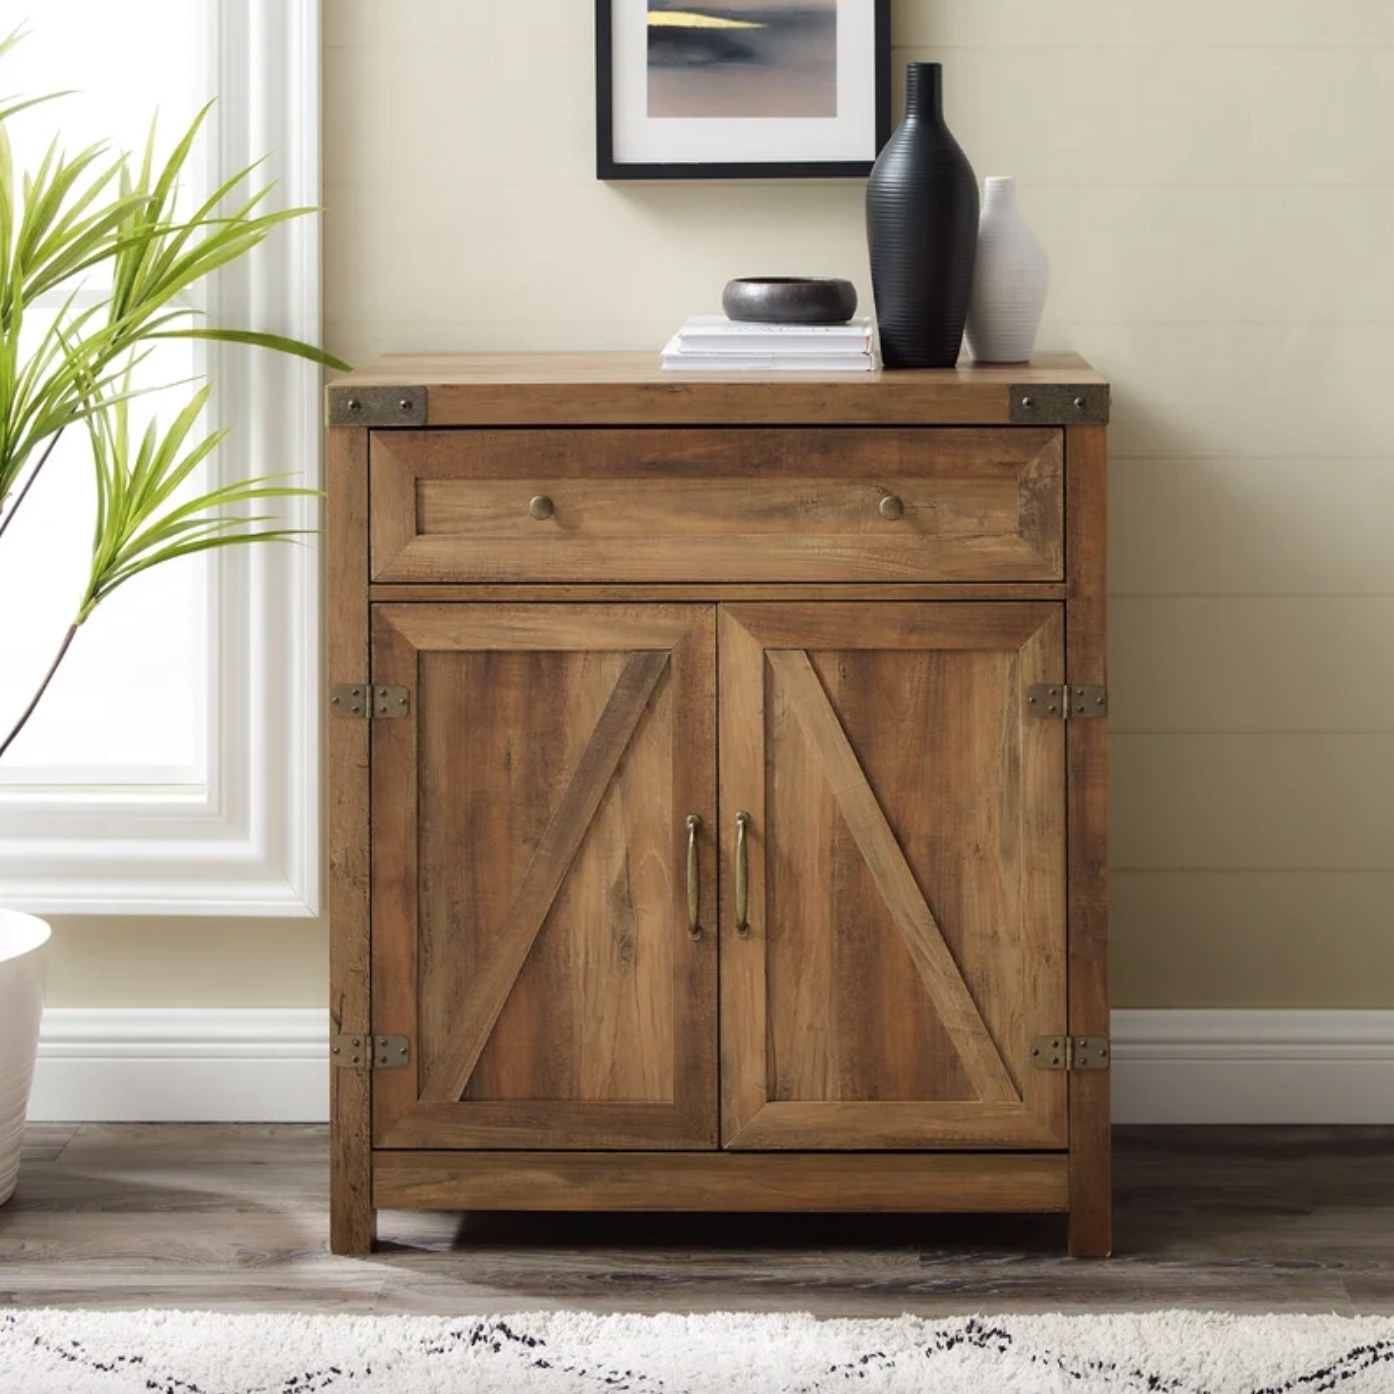 The two-door accent cabinet in reclaimed barnwood holding two vases